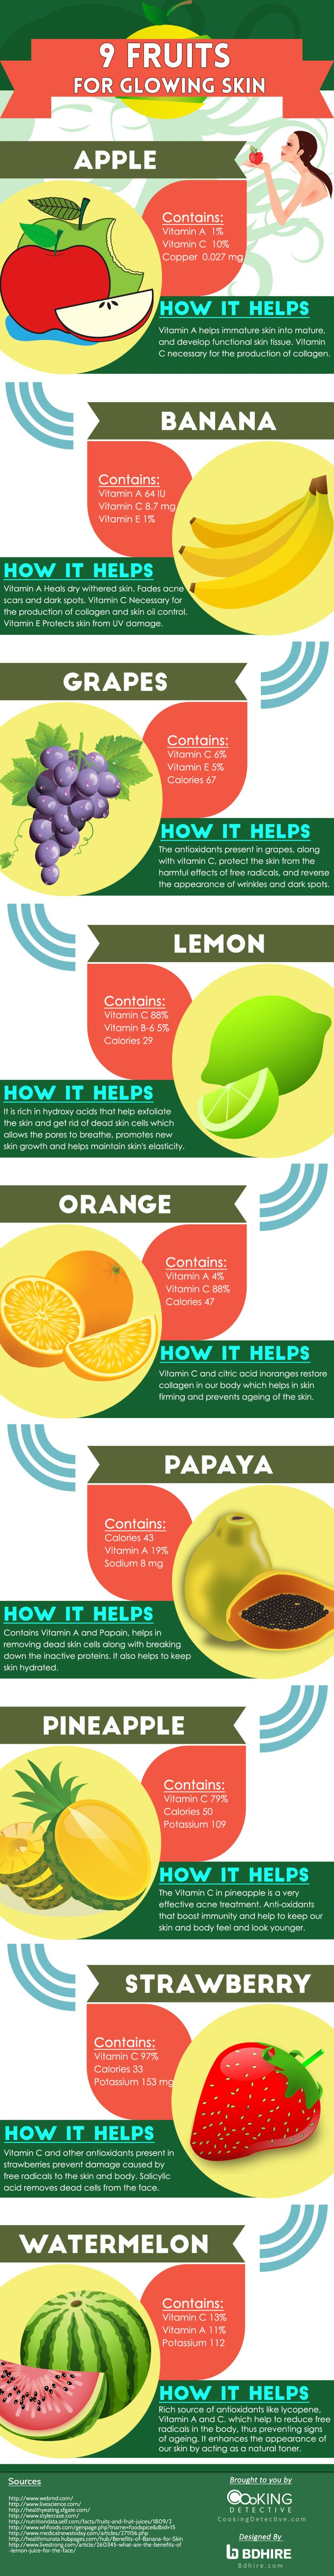 Do you know that the secret to a glowing skin in fruits? Check out which fruits best for glowing skin.